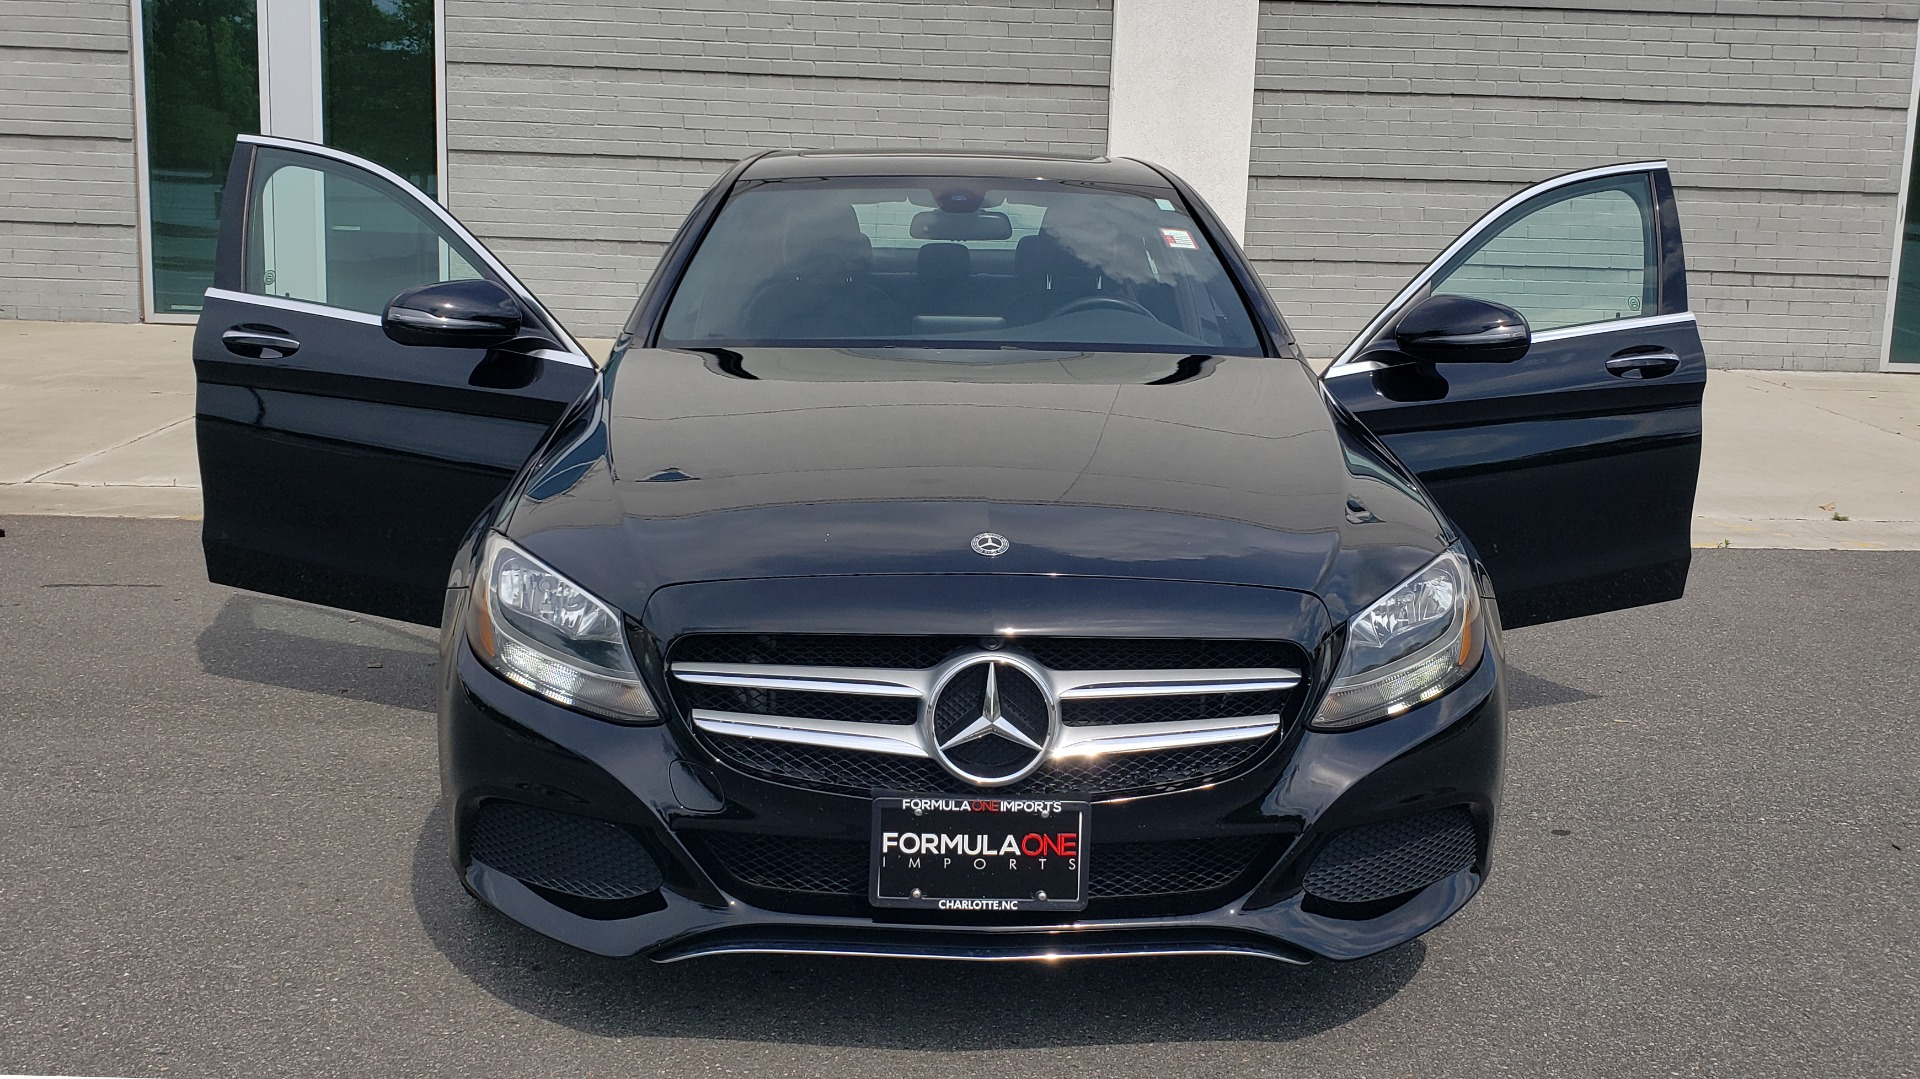 Used 2018 Mercedes-Benz C-CLASS C 300 PREMIUM / HTD STS / APPLE CARPLAY / 18IN WHEELS / REARVIEW for sale $24,795 at Formula Imports in Charlotte NC 28227 22